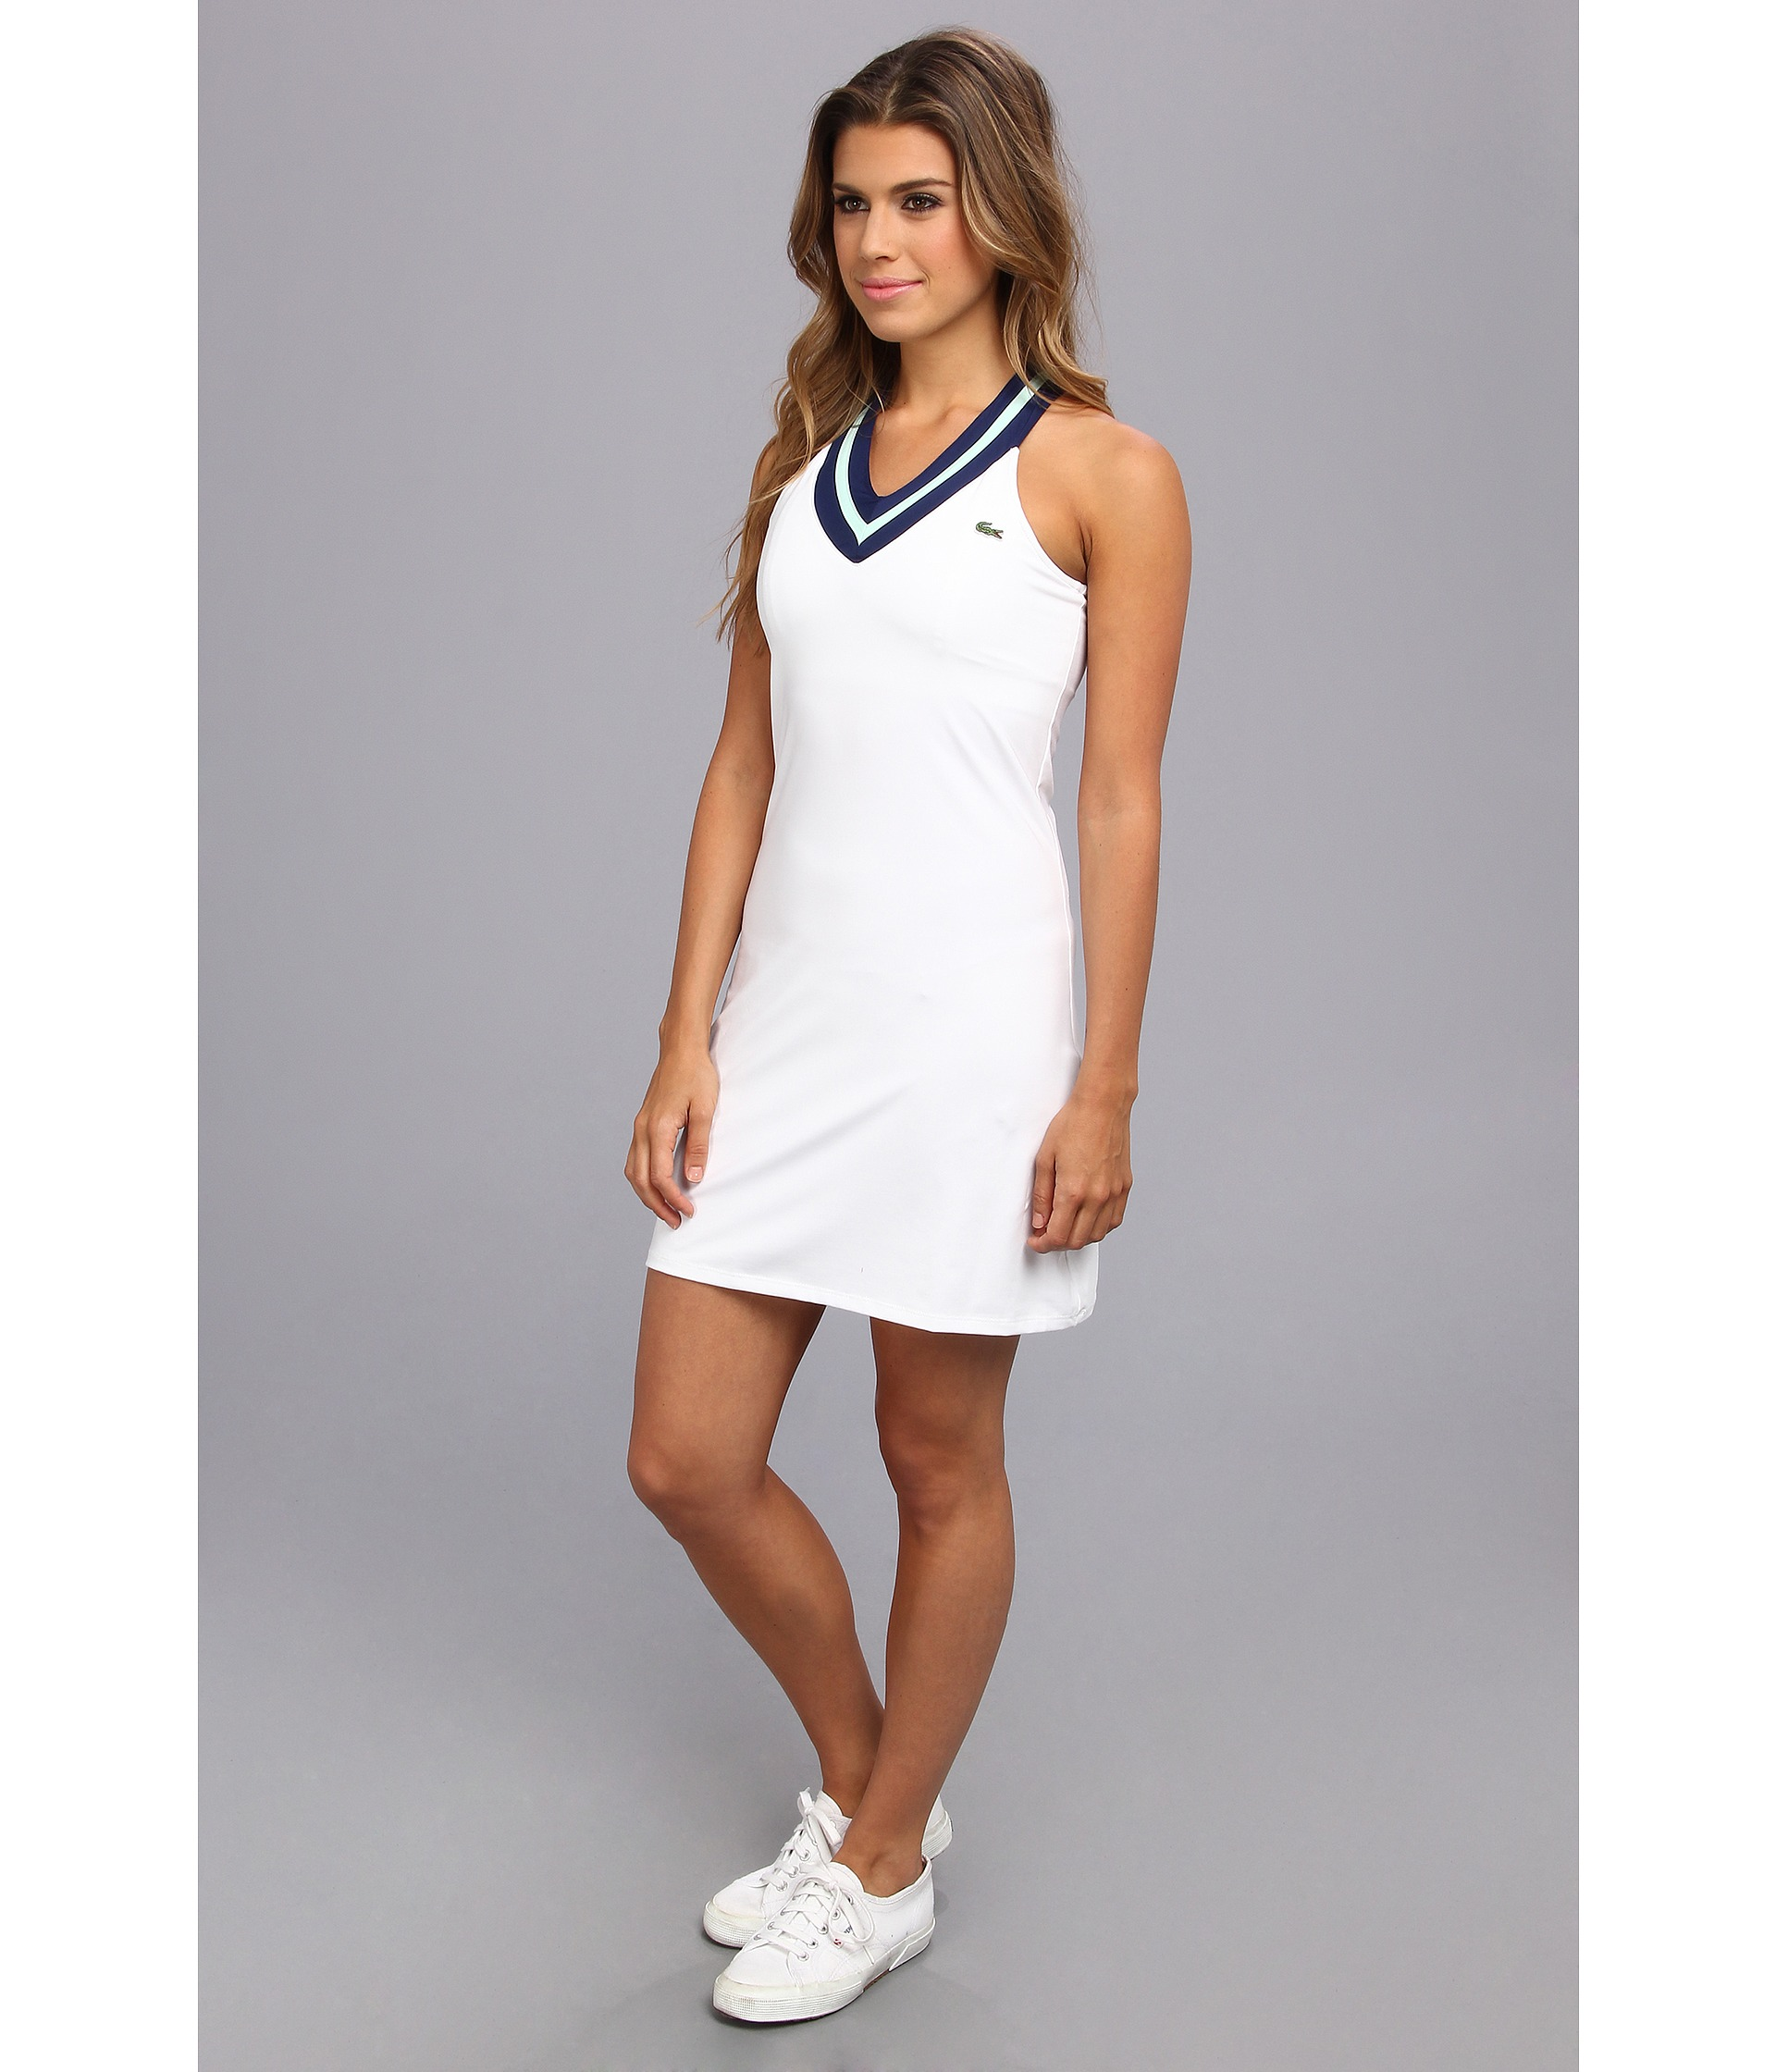 Nike Women's Court Pure Tennis Dress | DICK'S Sporting GoodsTypes: Racquets, Equipment, Accessories, Footwear, Apparel.